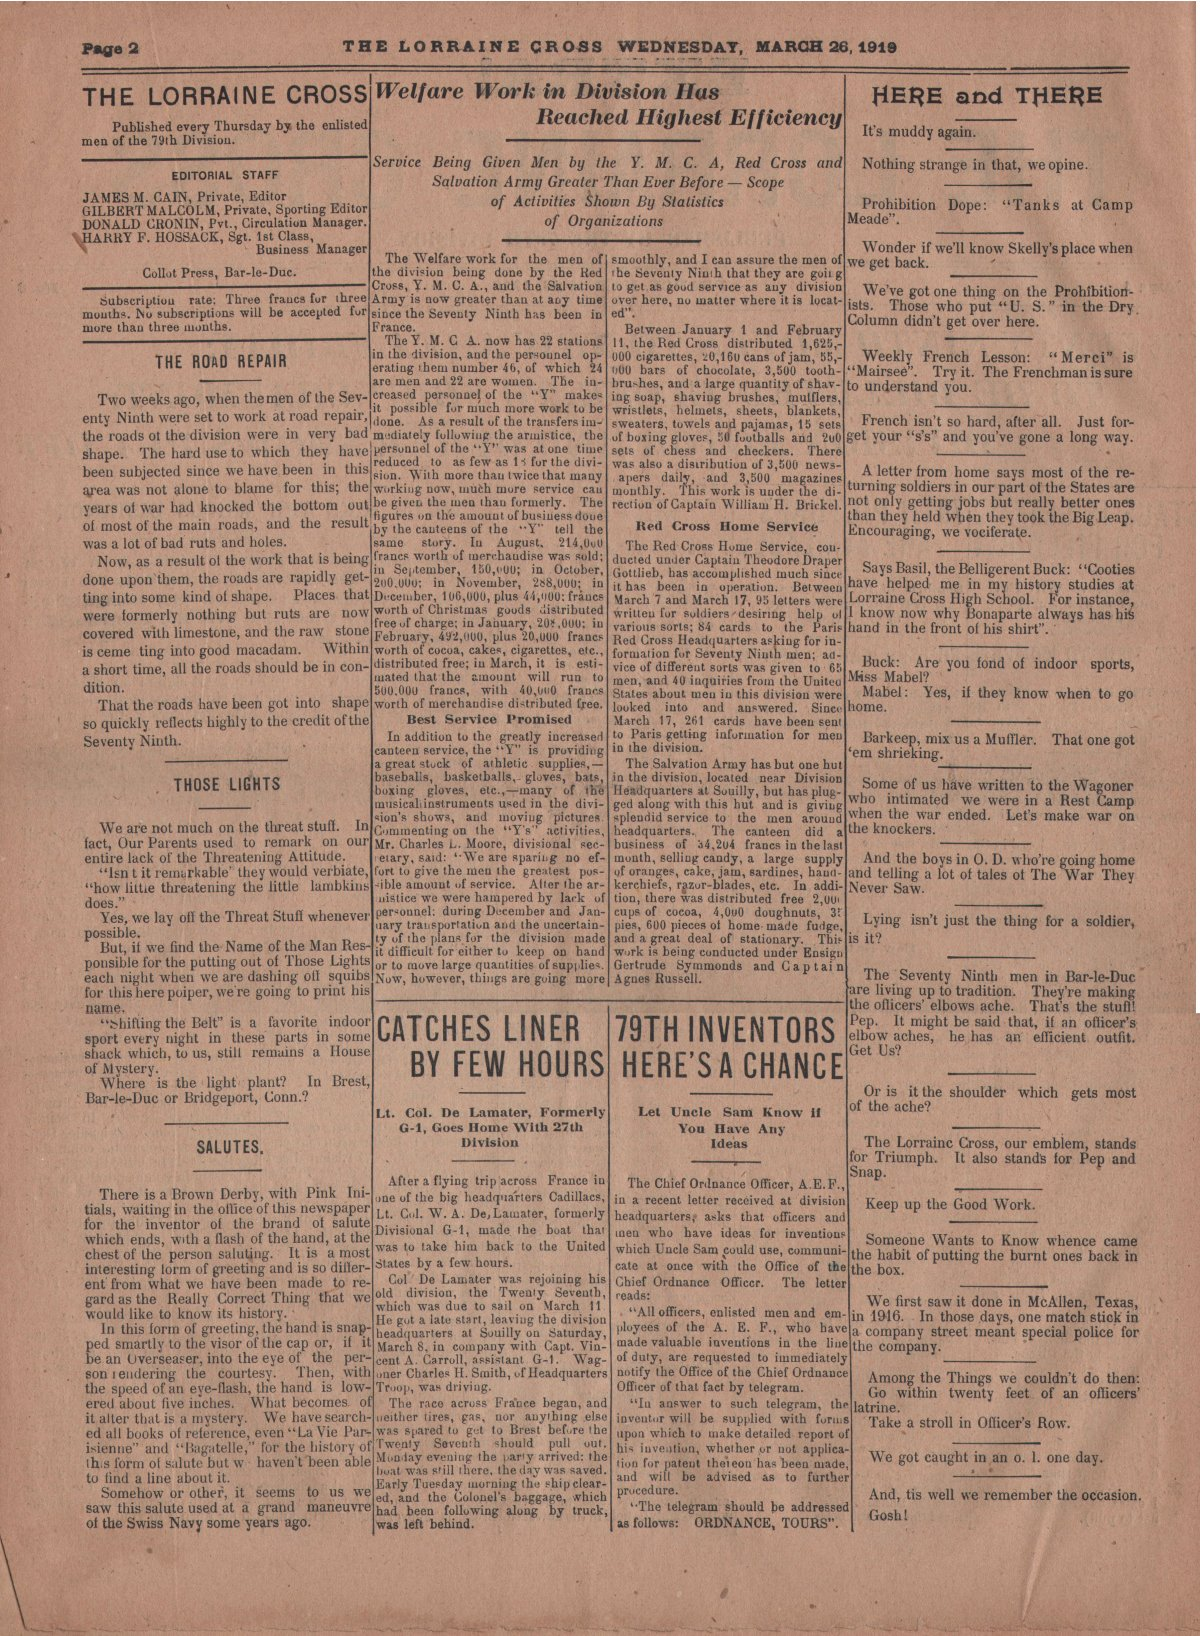 Lorraine Cross Newspaper Volume 1 Number 5 France March 26 1919 Page 2